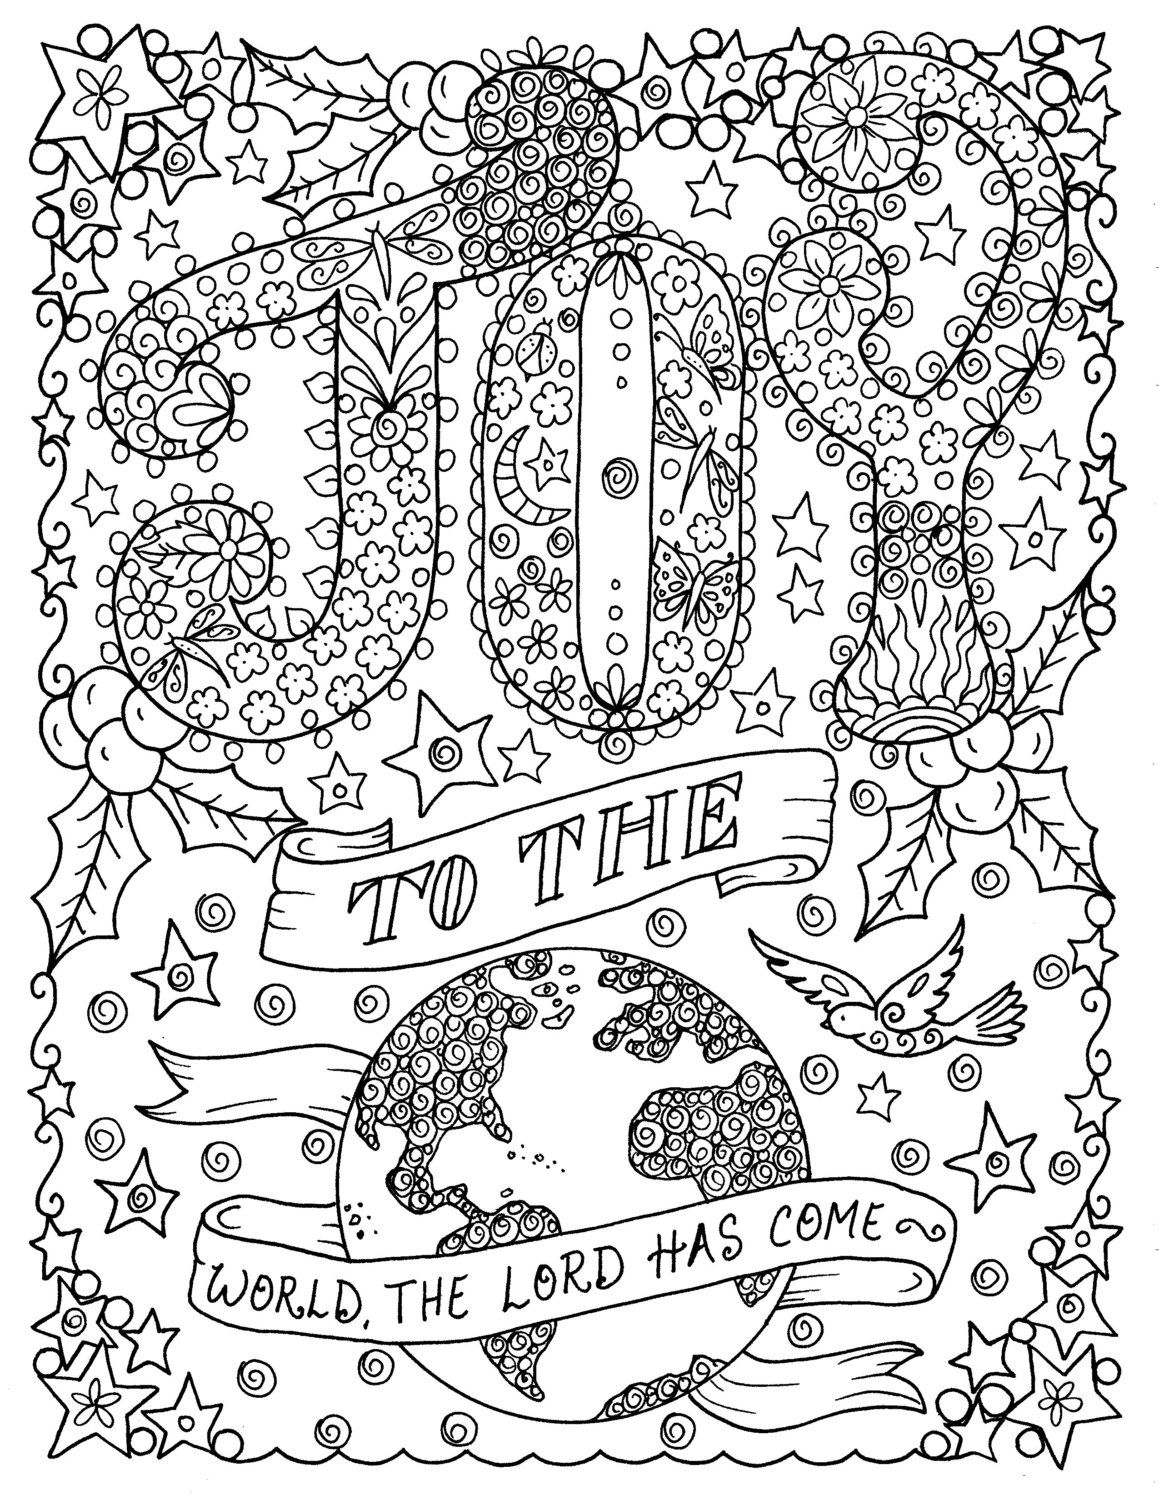 5 christian coloring pages for christmas color by chubbymermaid